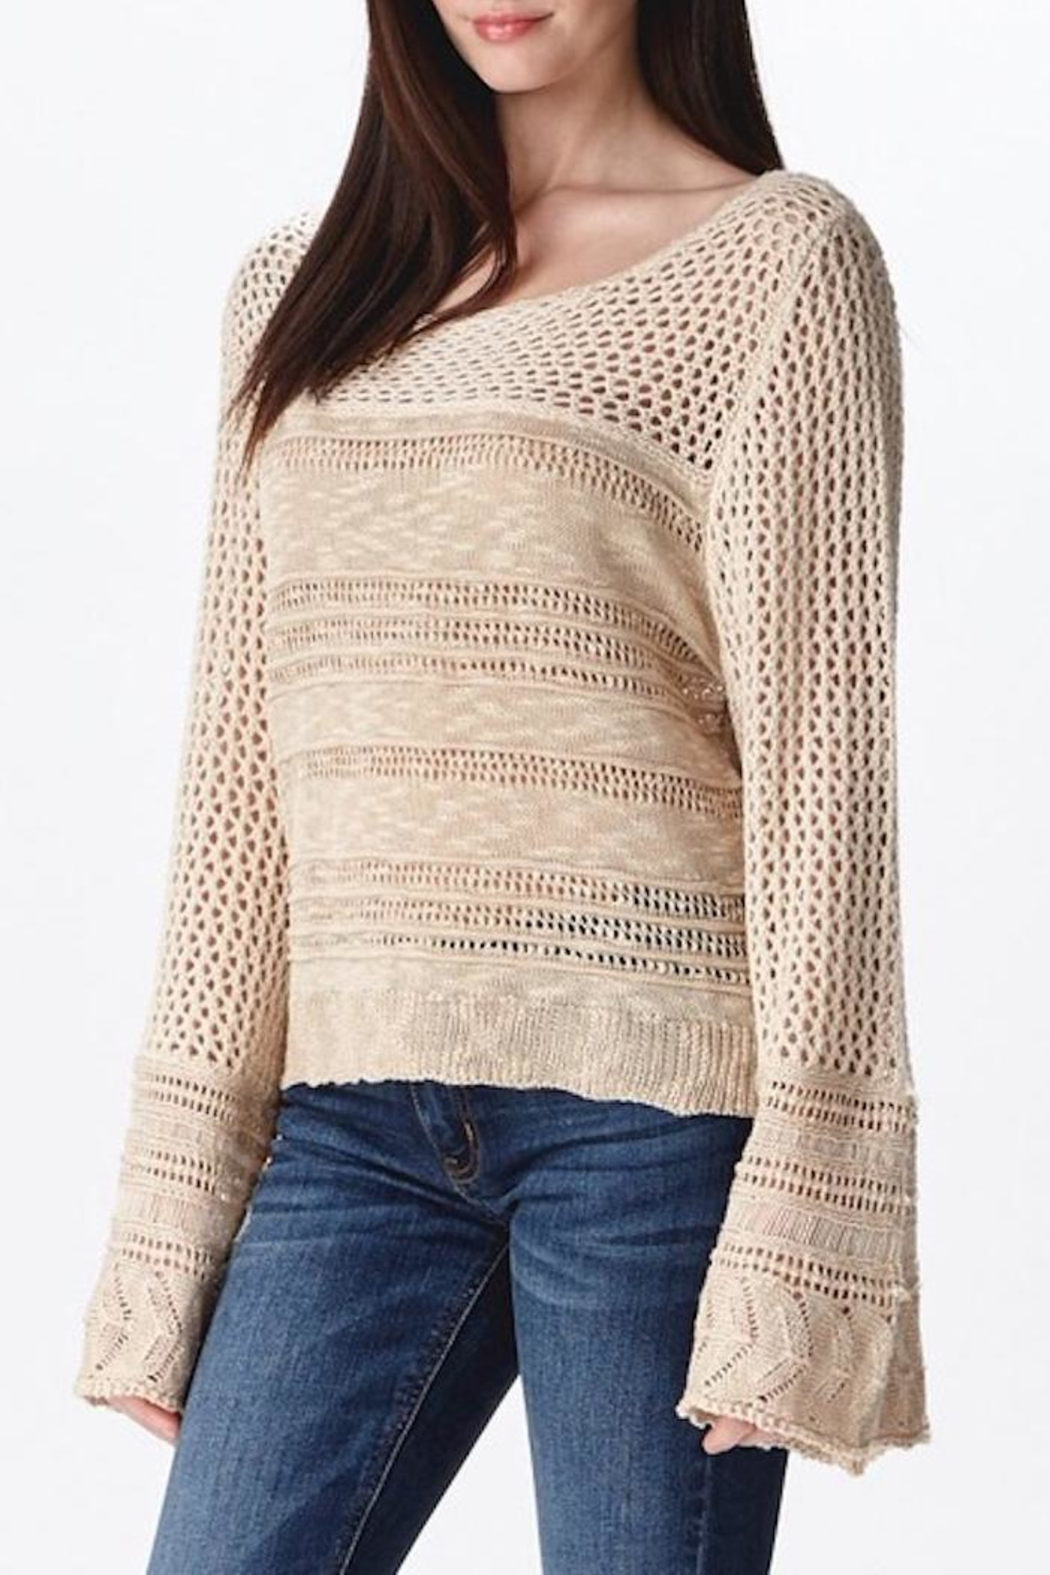 Ganji LA Neutral Beige Sweater - Side Cropped Image